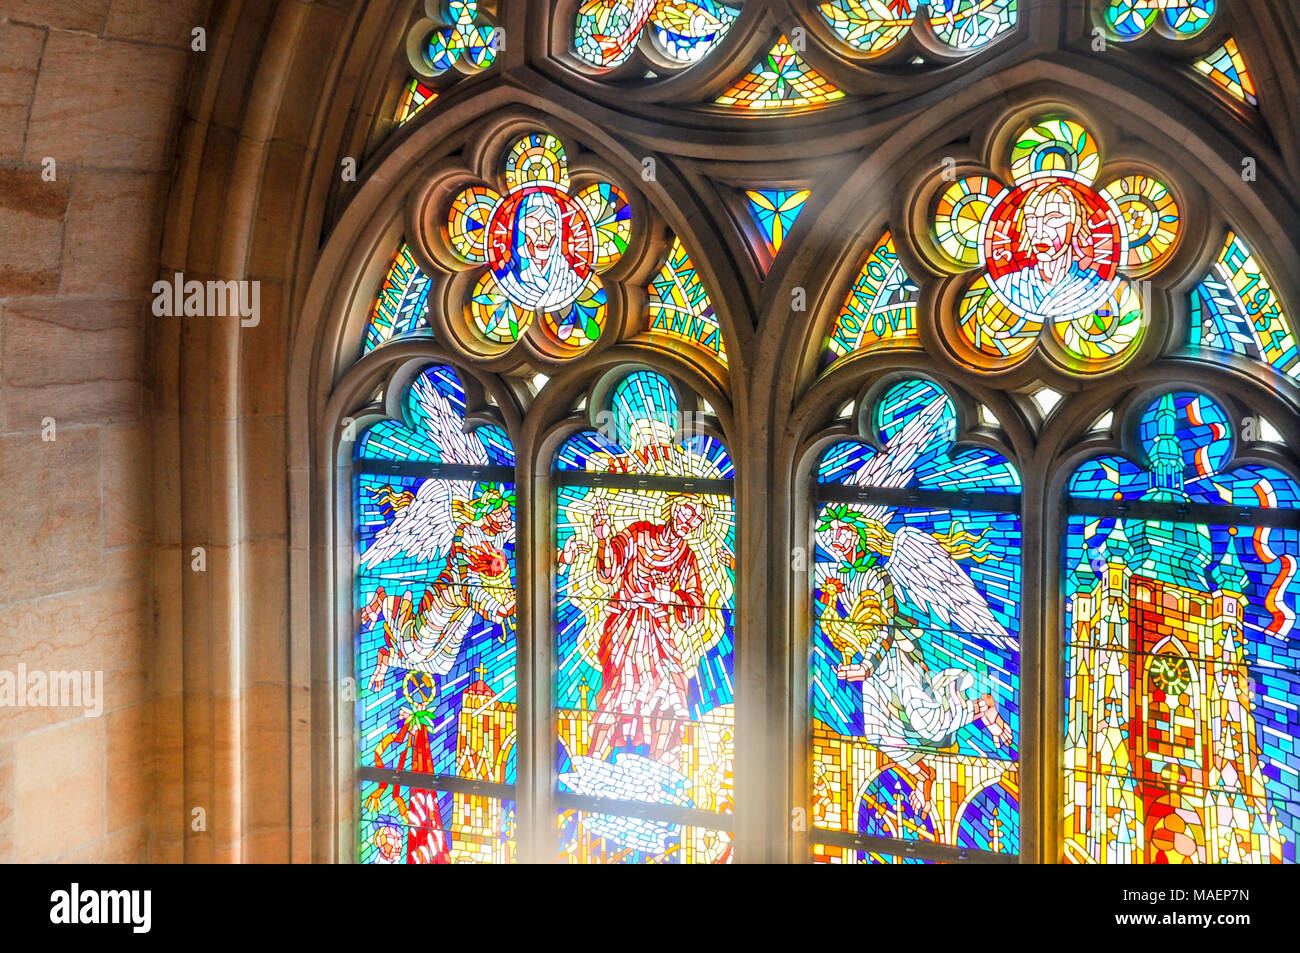 Beautiful Stained glass window detail Stock Photo